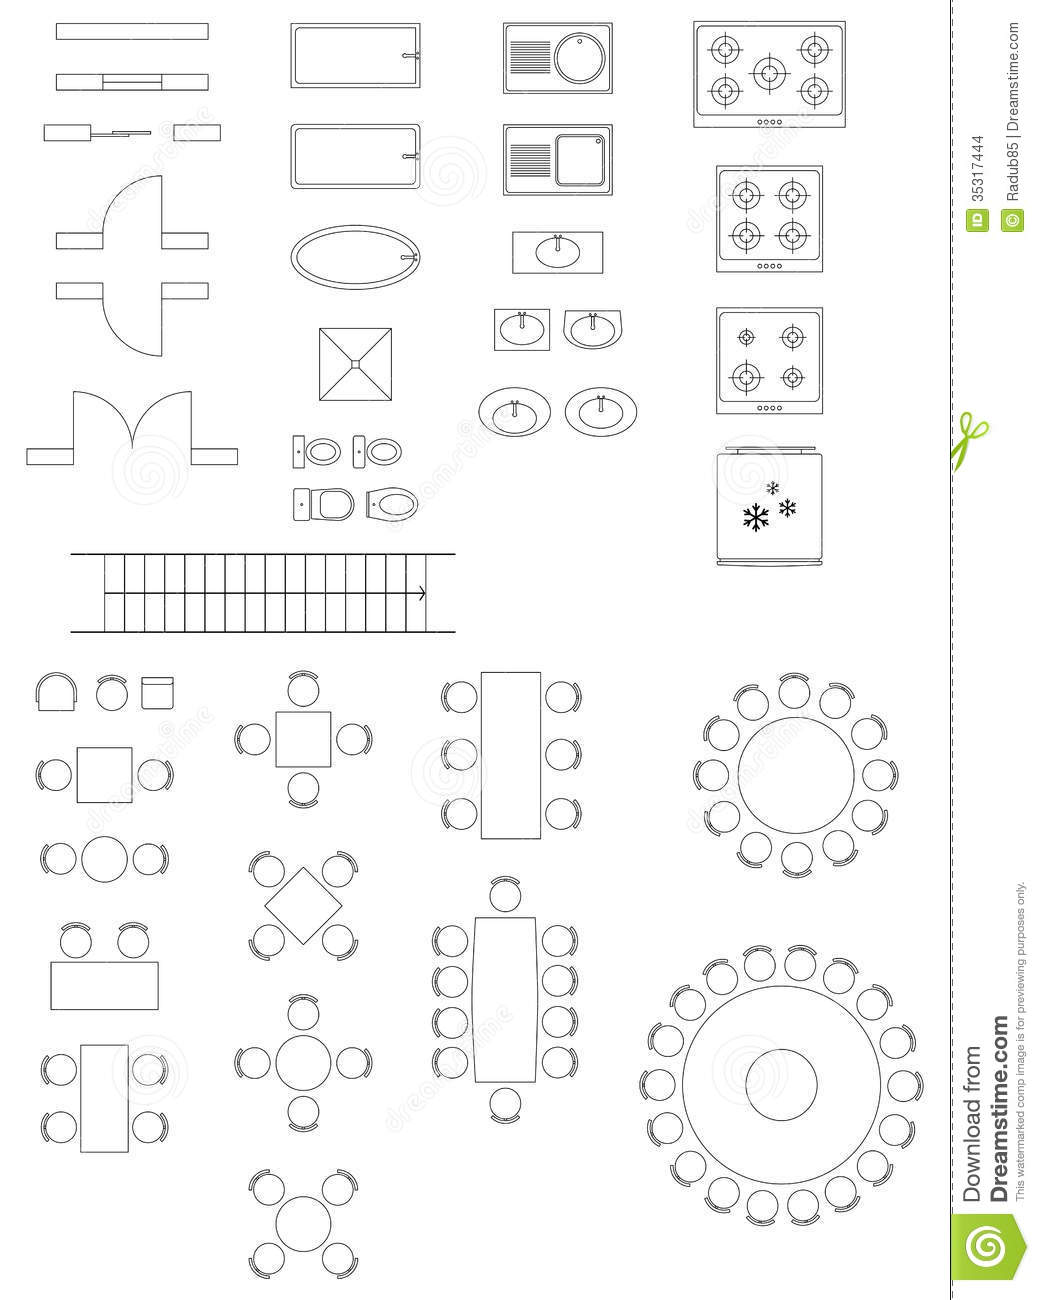 Clipart architectural symbols png free library 9 Architectural Icons Clip Art Images - Architectural Furniture ... png free library